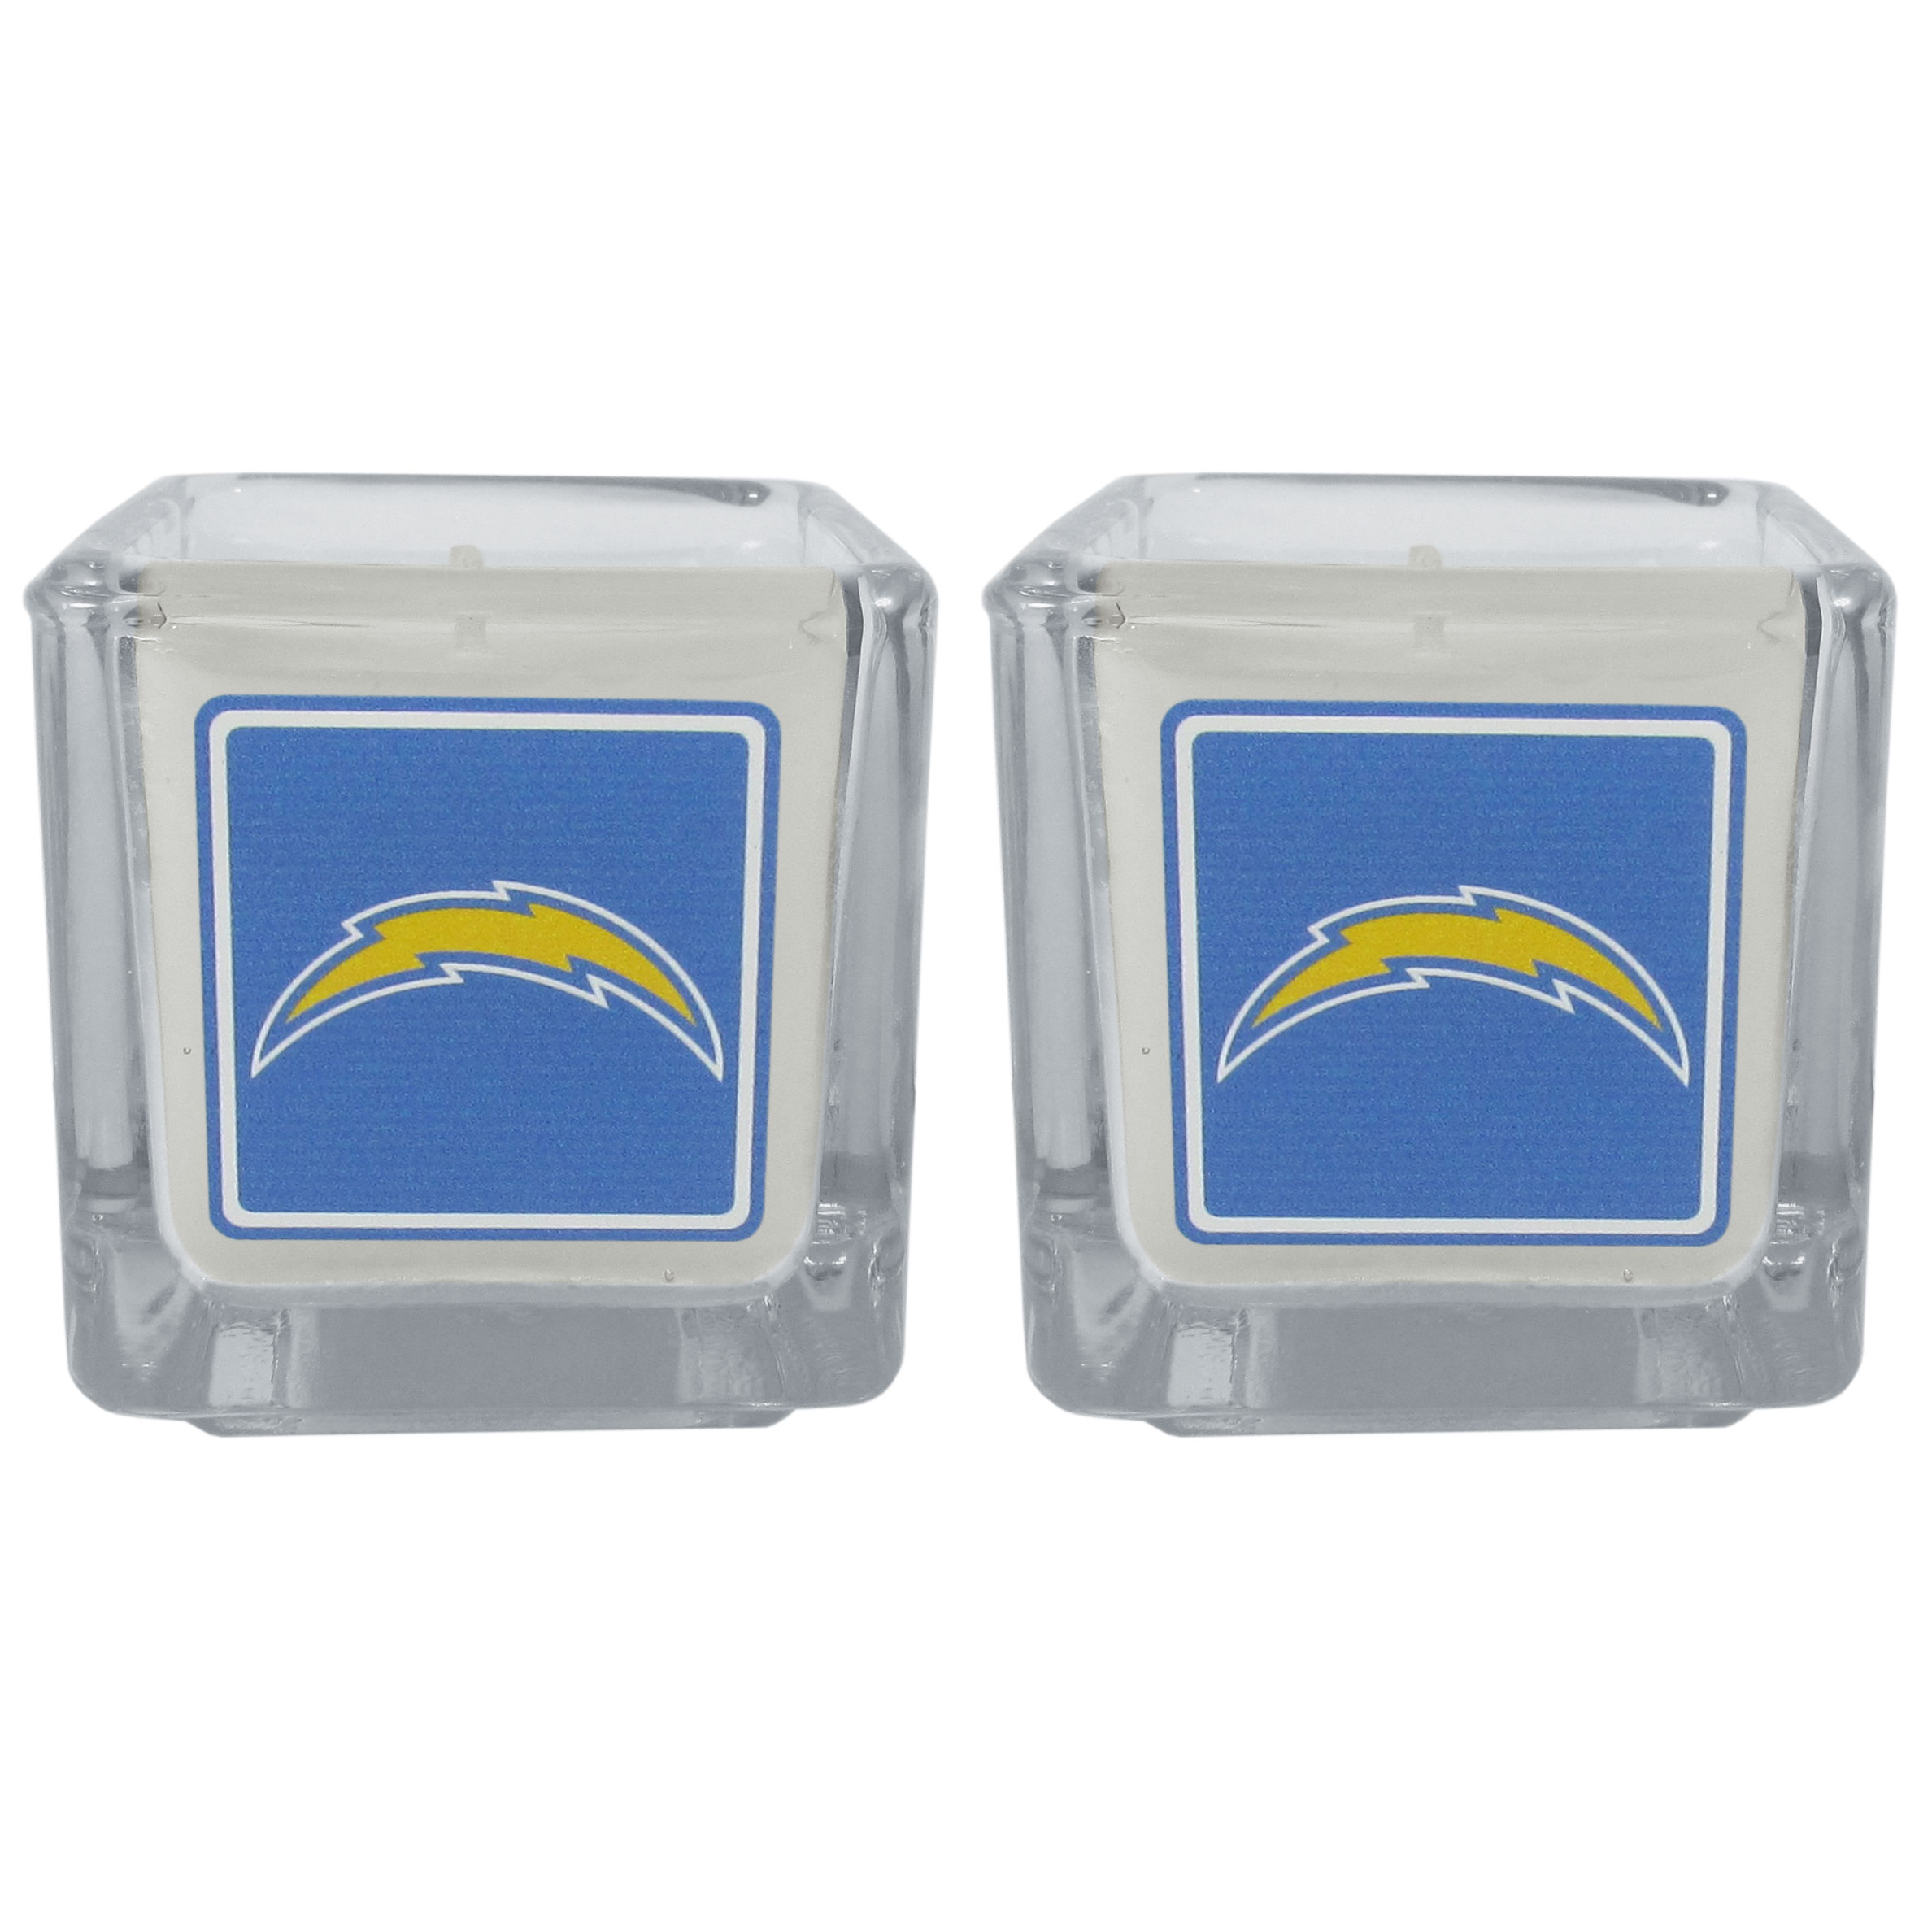 Los Angeles Chargers Graphics Candle Set - Our candle set features 2 lightly vanilla scented candles with the Los Angeles Chargers logo expertly printed on front. The candles are 2 inches tall in the votive style.